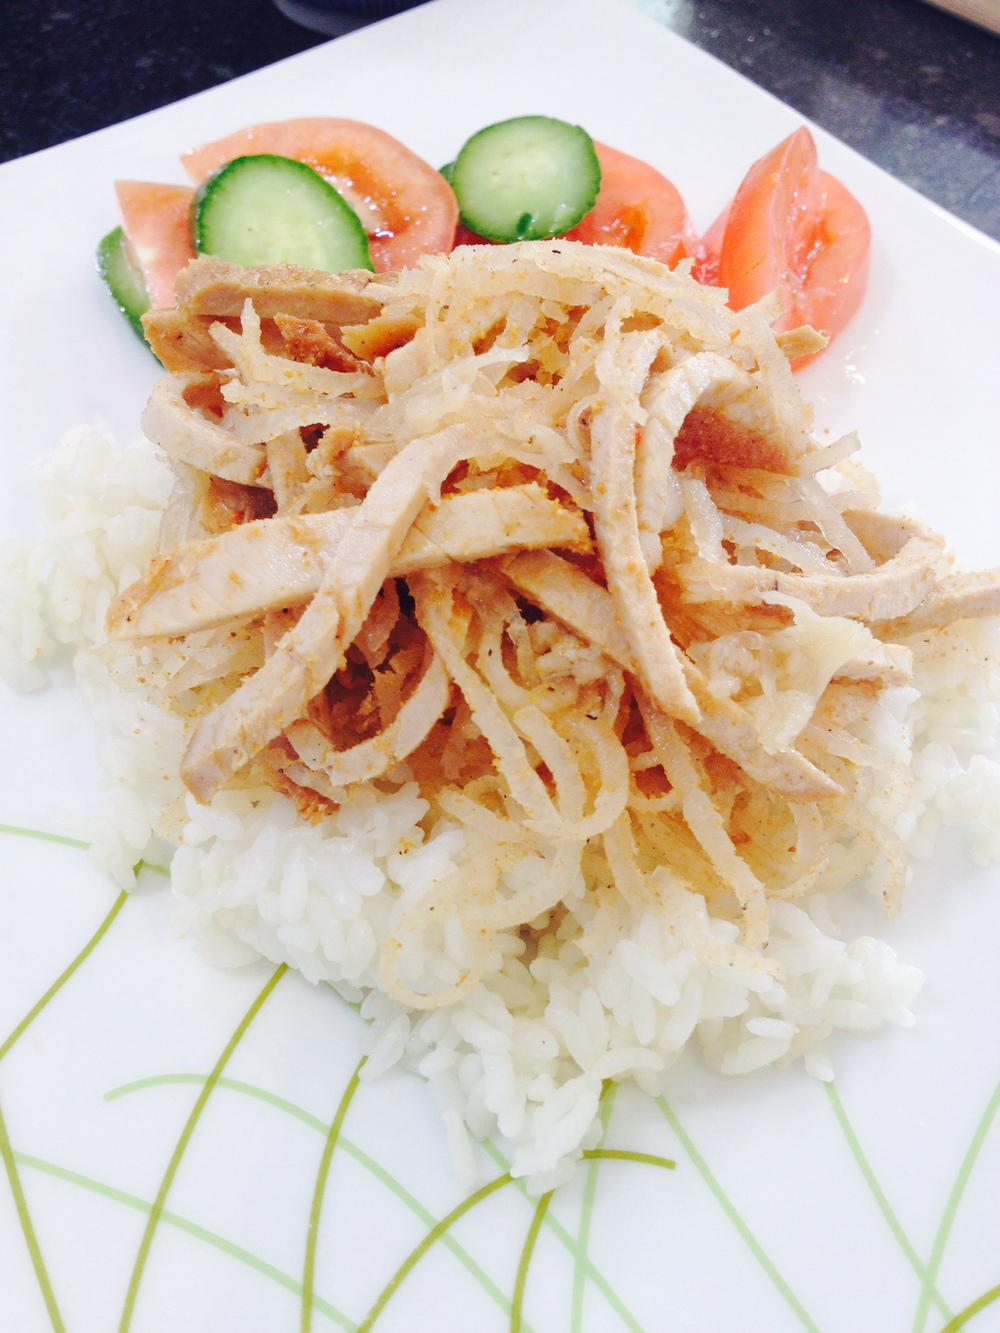 Shredded Pork and Rice